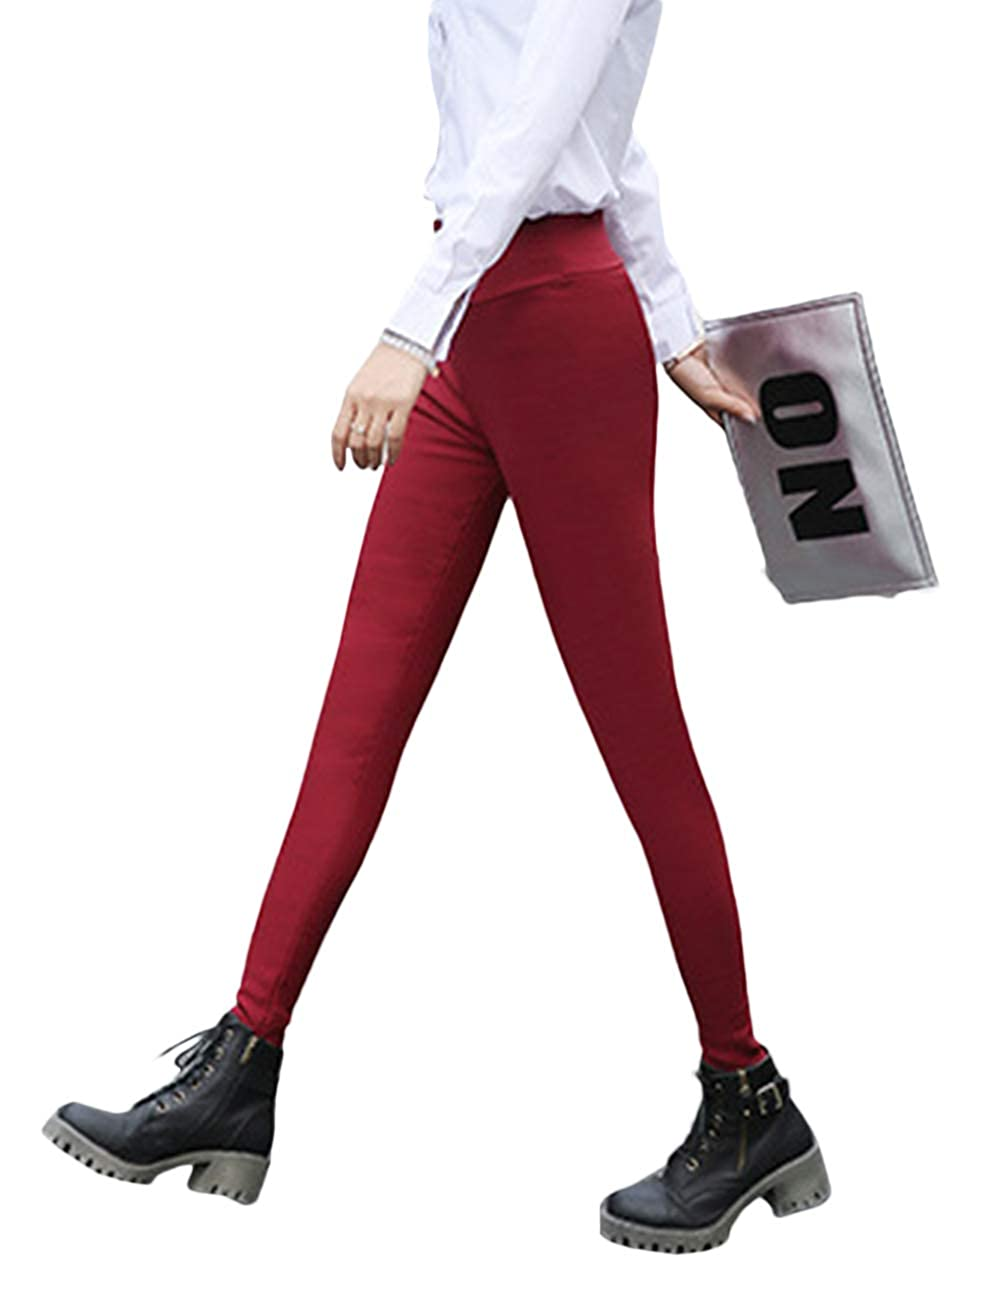 Women's High Rise Warm Fleece Lined Pants Leggings Winter Skinny Pencil Pants